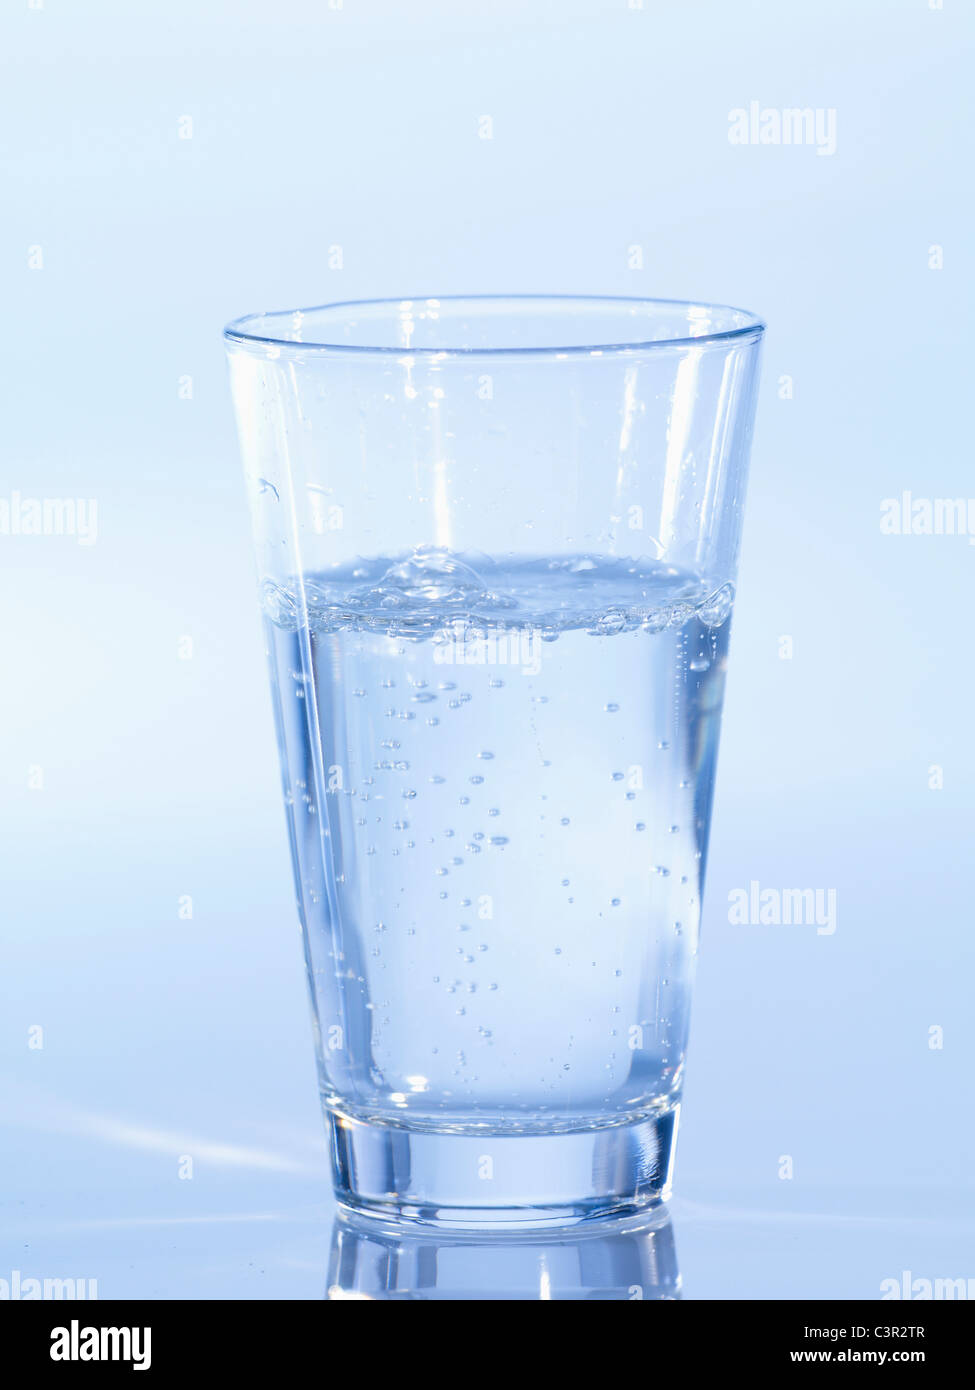 Fizzy glass of water, close-up - Stock Image